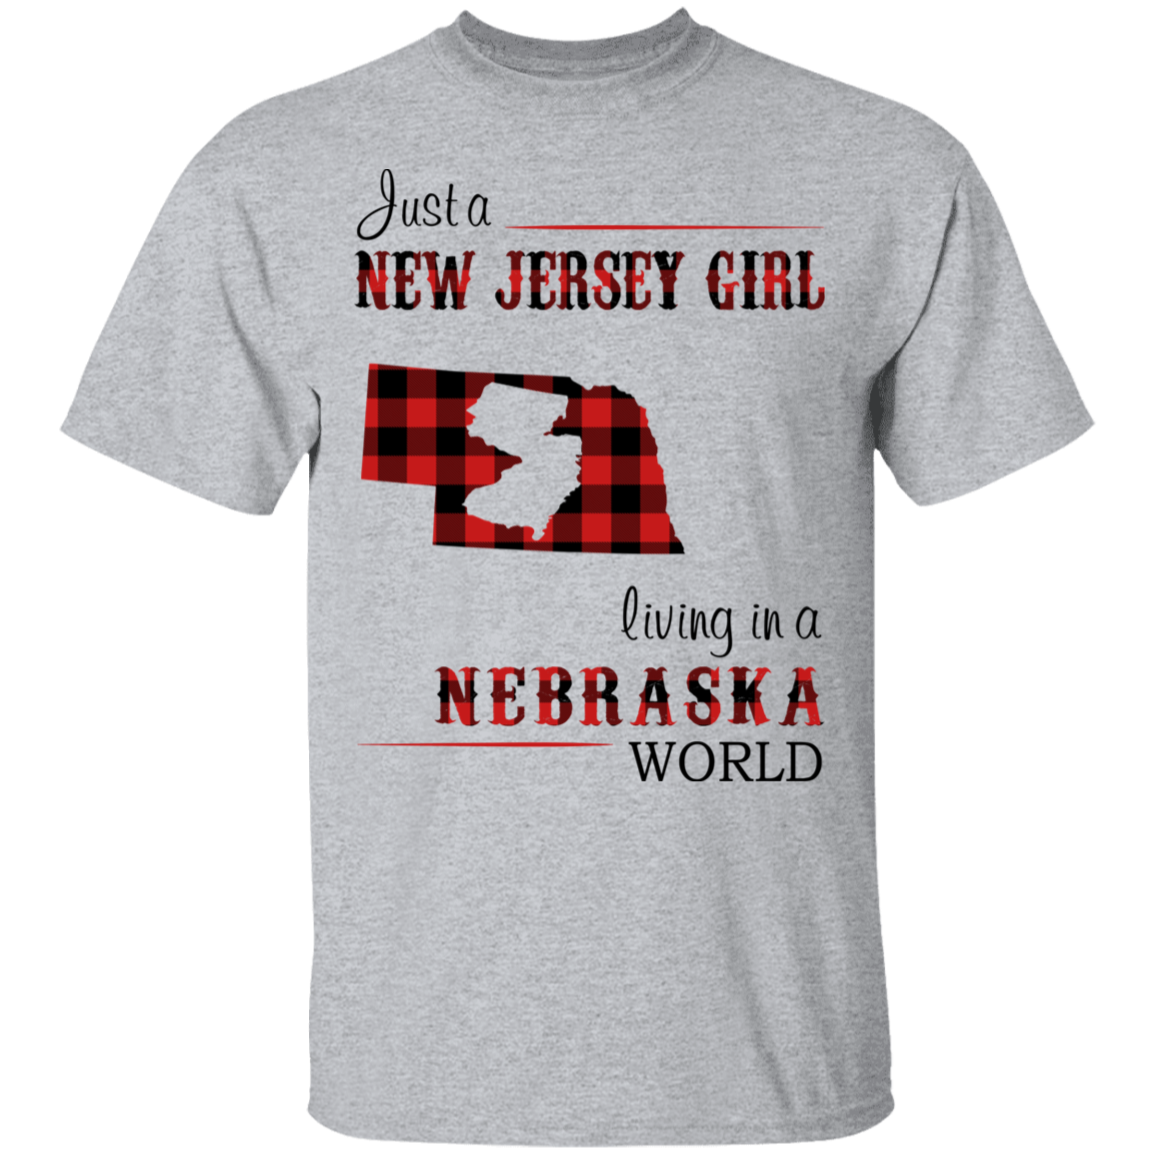 JUST A NEW JERSEY GIRL LIVING IN A NEBRASKA WORLD